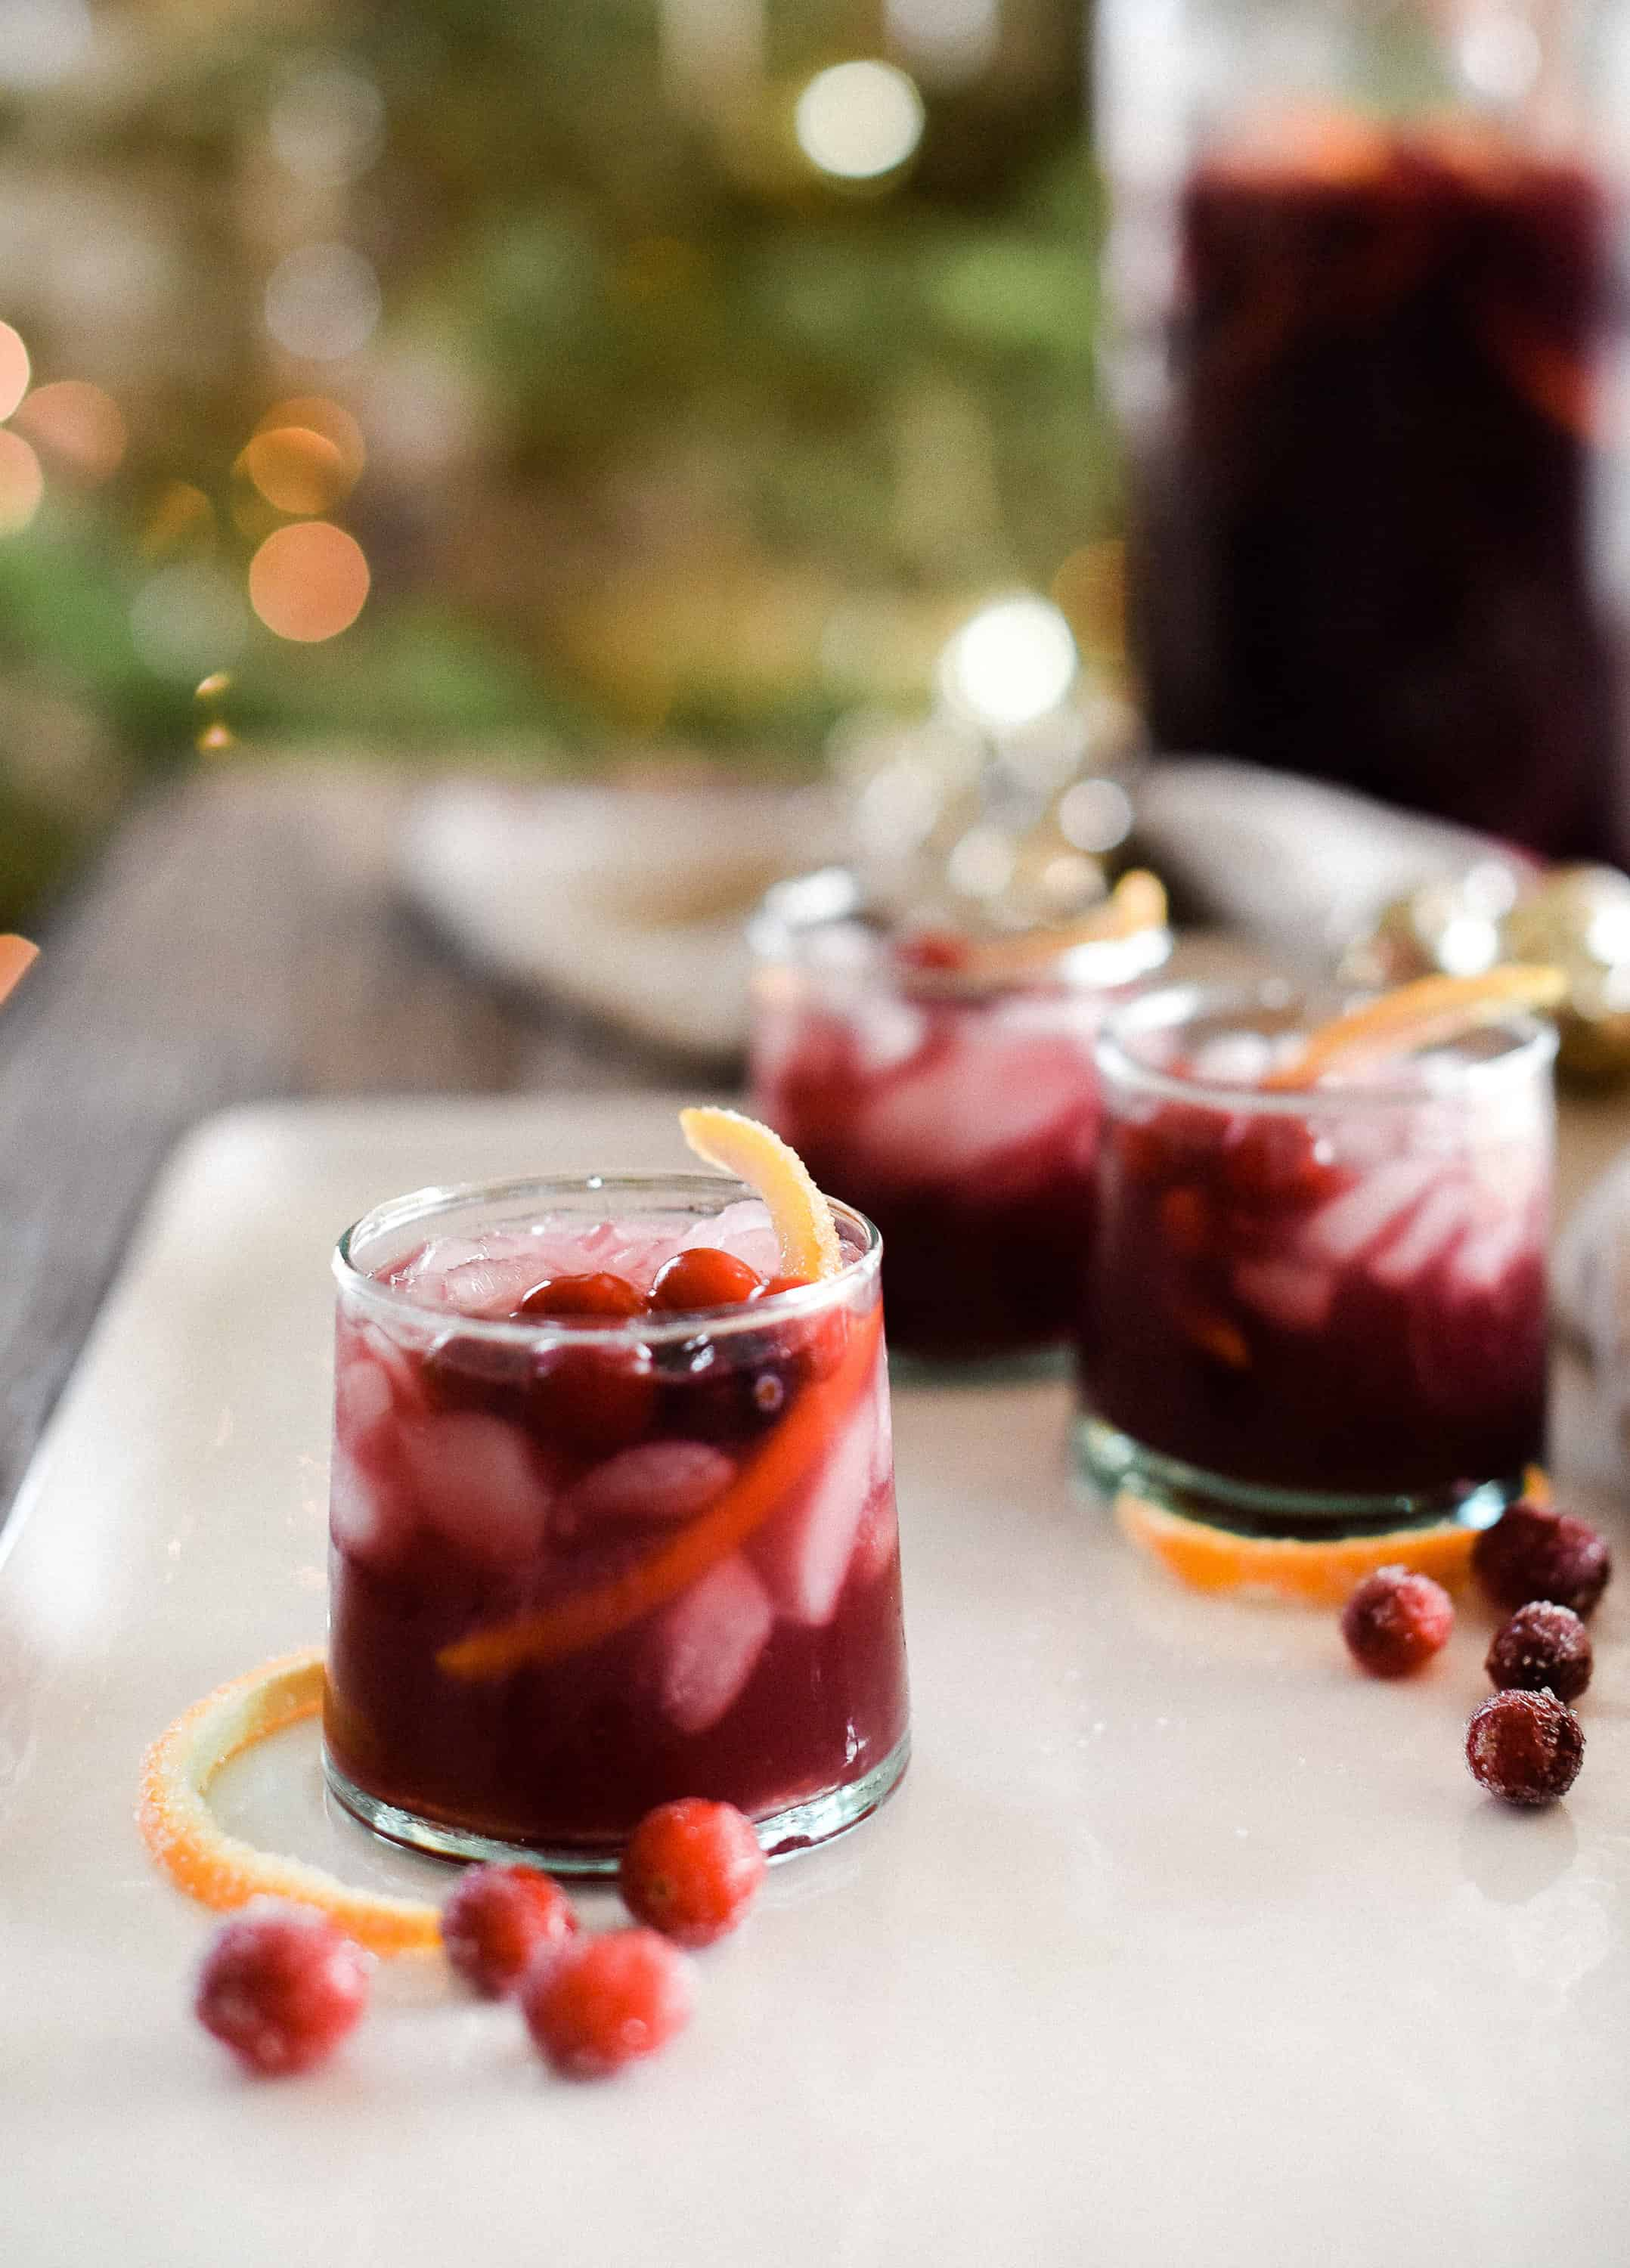 I can confidently say this is the best Sangria recipe I've ever had. Your guests will love this delicious Christmas sangria, and will be asking for the recipe by the end of the night!